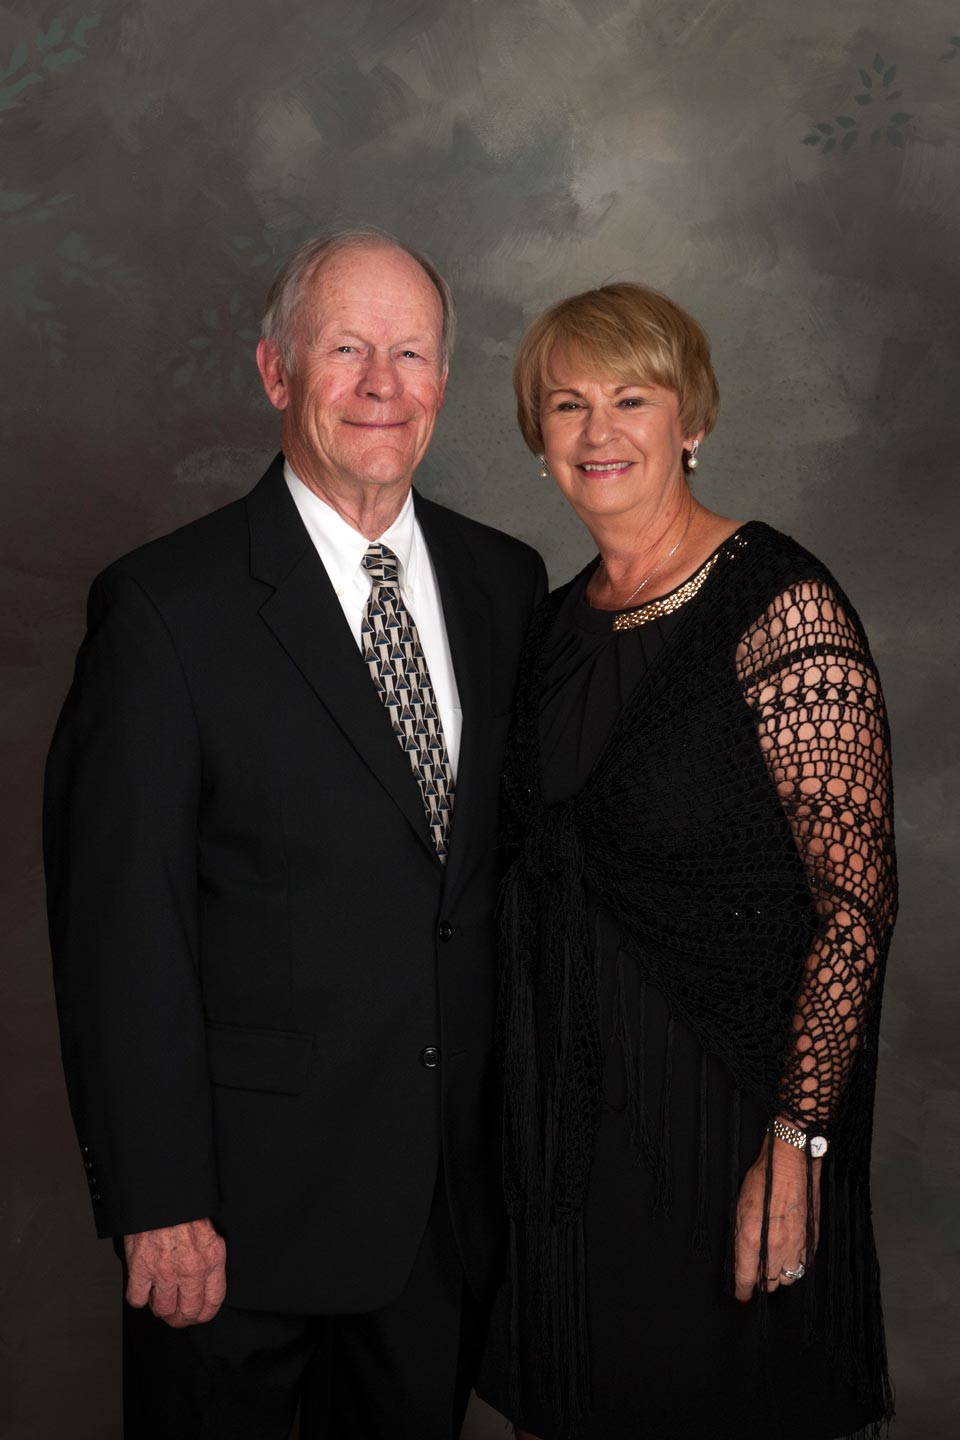 Ken and Elaine Treusdell